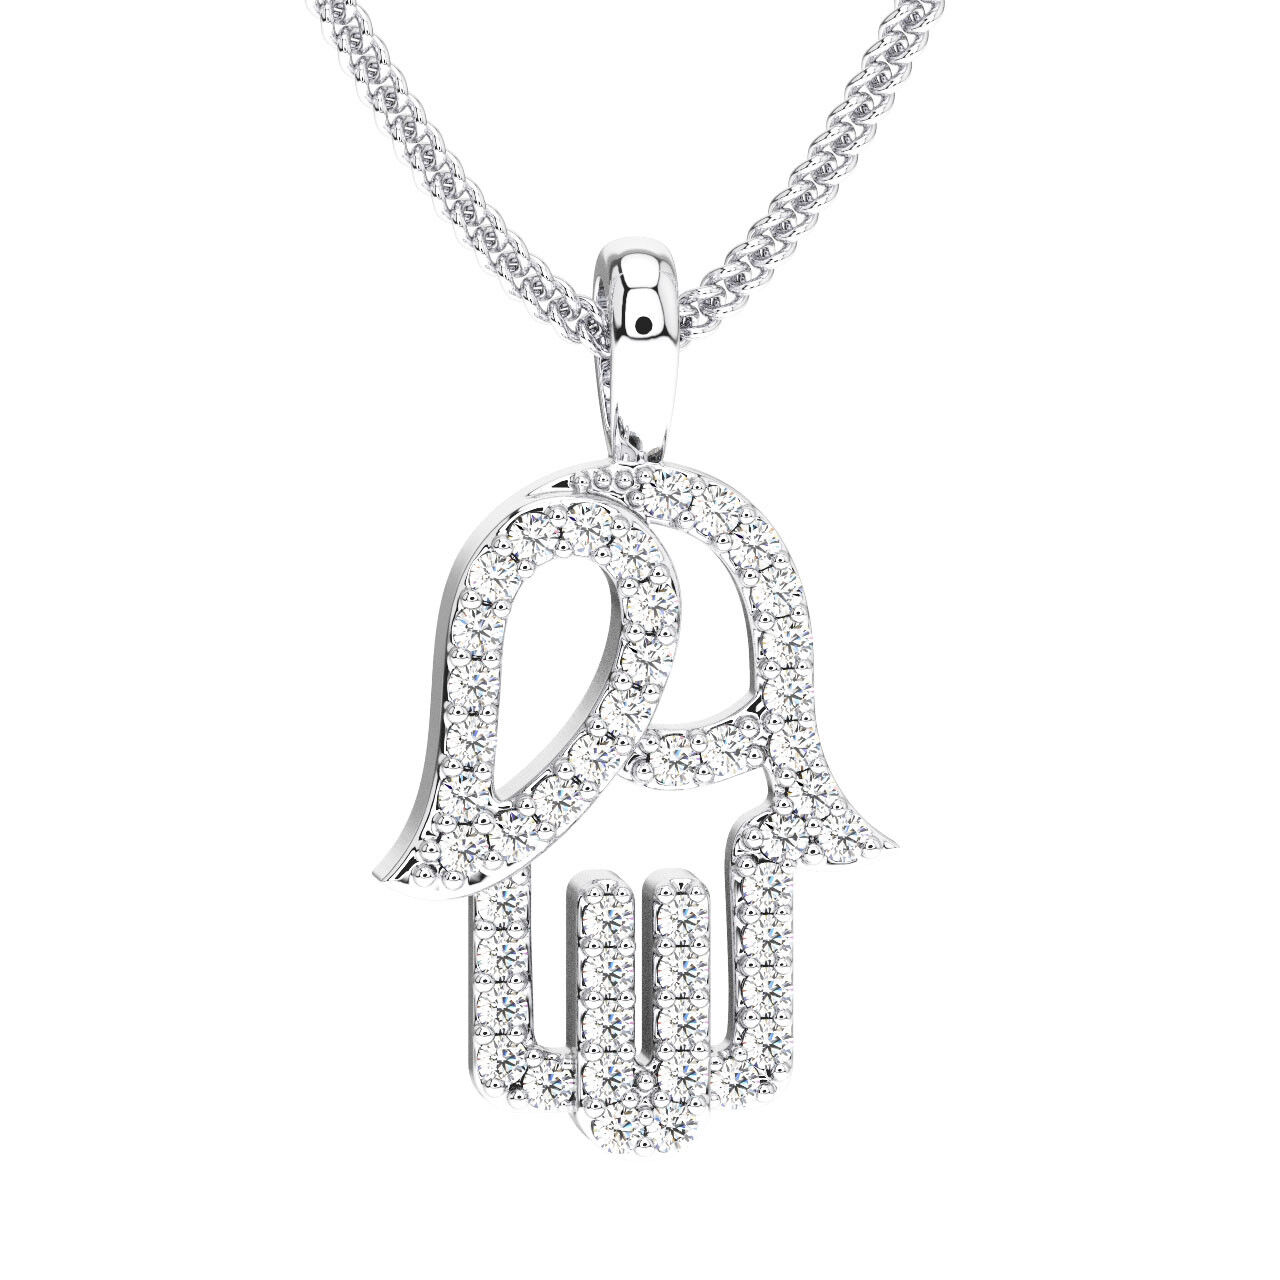 0.25 Carat Round Brilliant Cut Diamonds Hamsa Evil Hand Pendant In Platinum